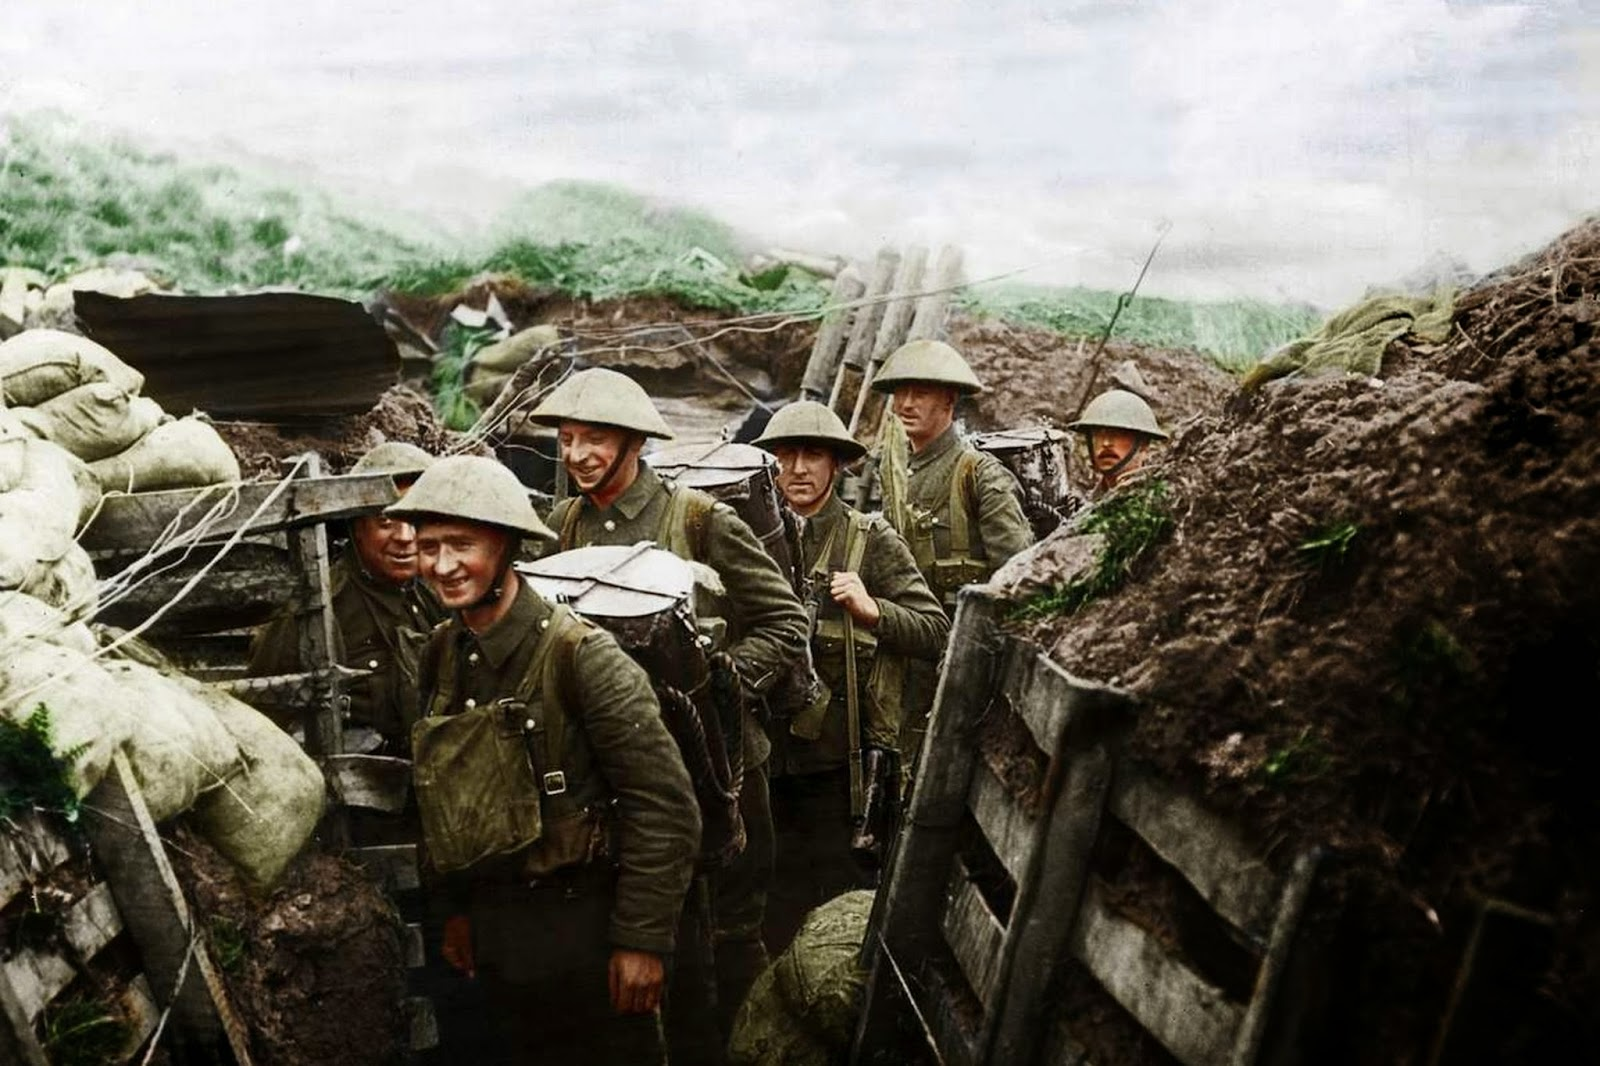 world war i What were the main causes of world war i learn about how mutual defense alliances, imperialism, militarism, and nationalism all played a part.